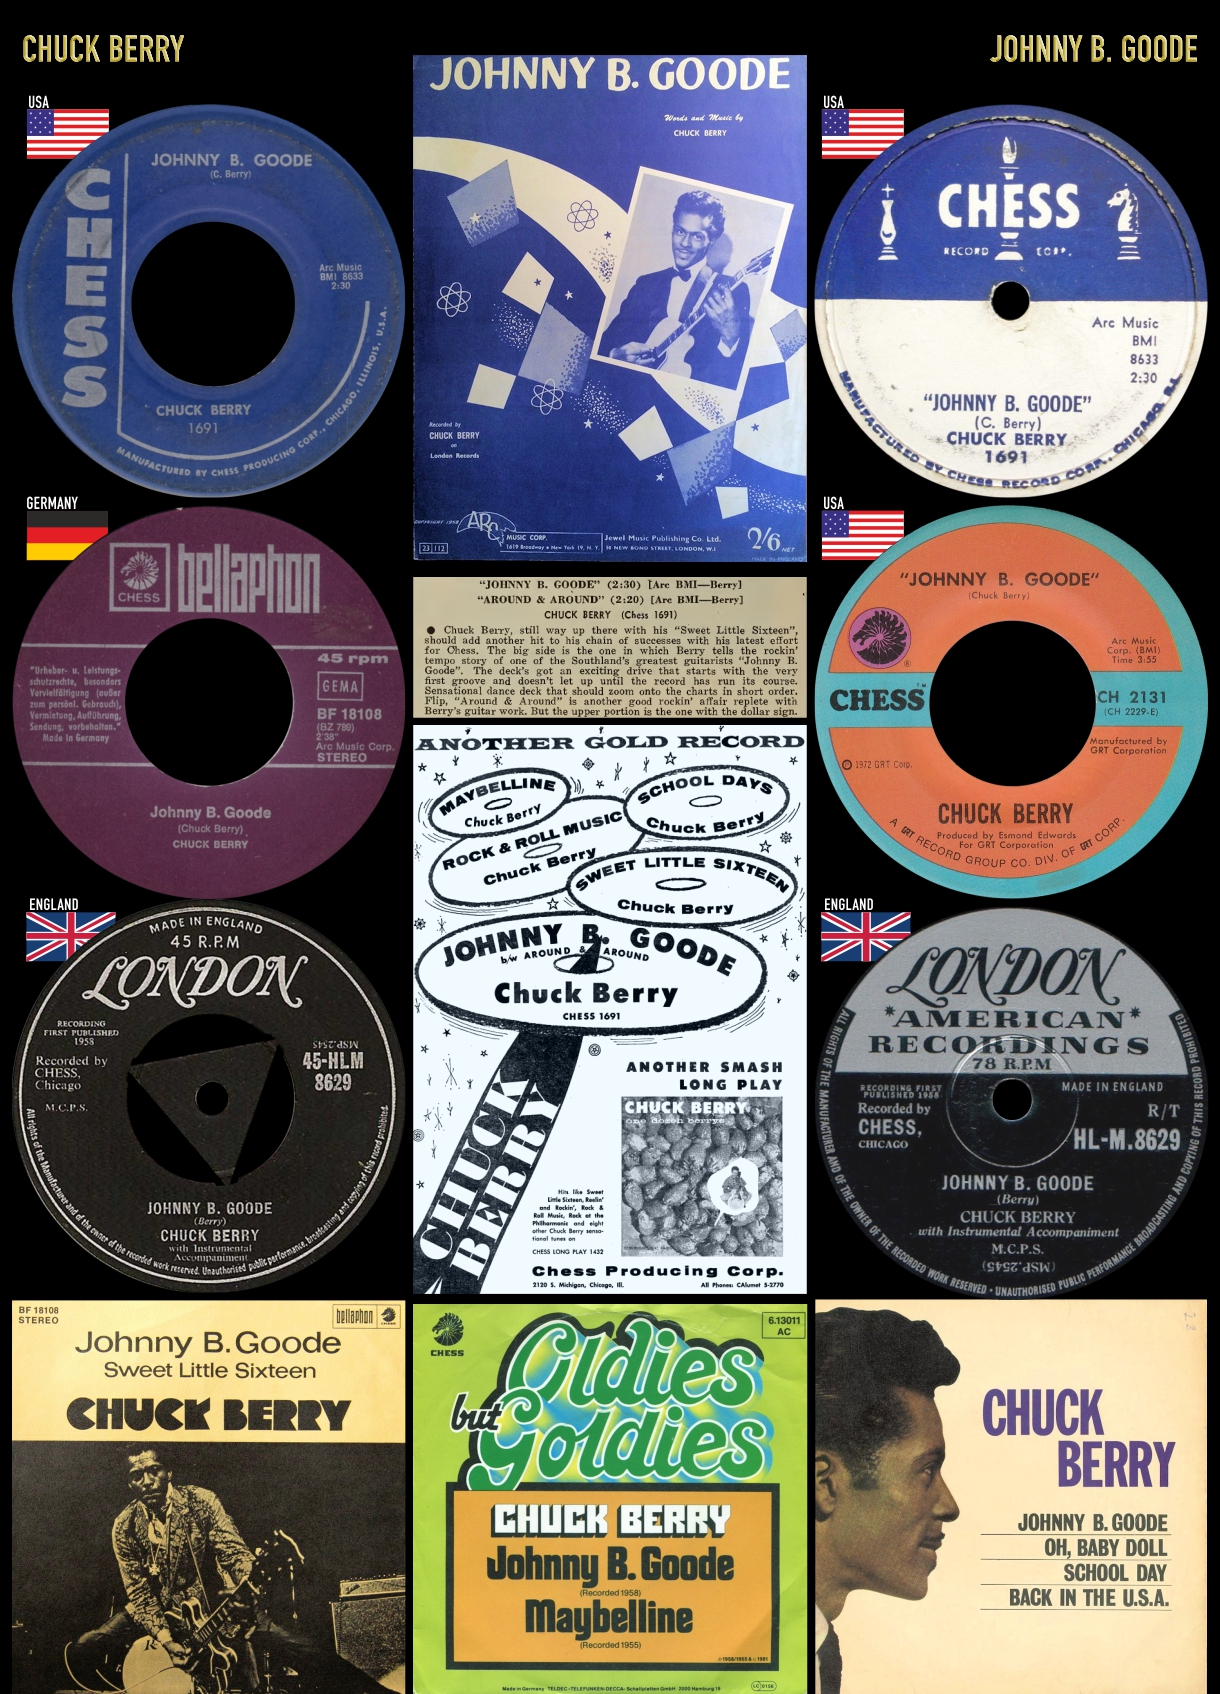 580426_Chuck Berry_Johnny B. Goode